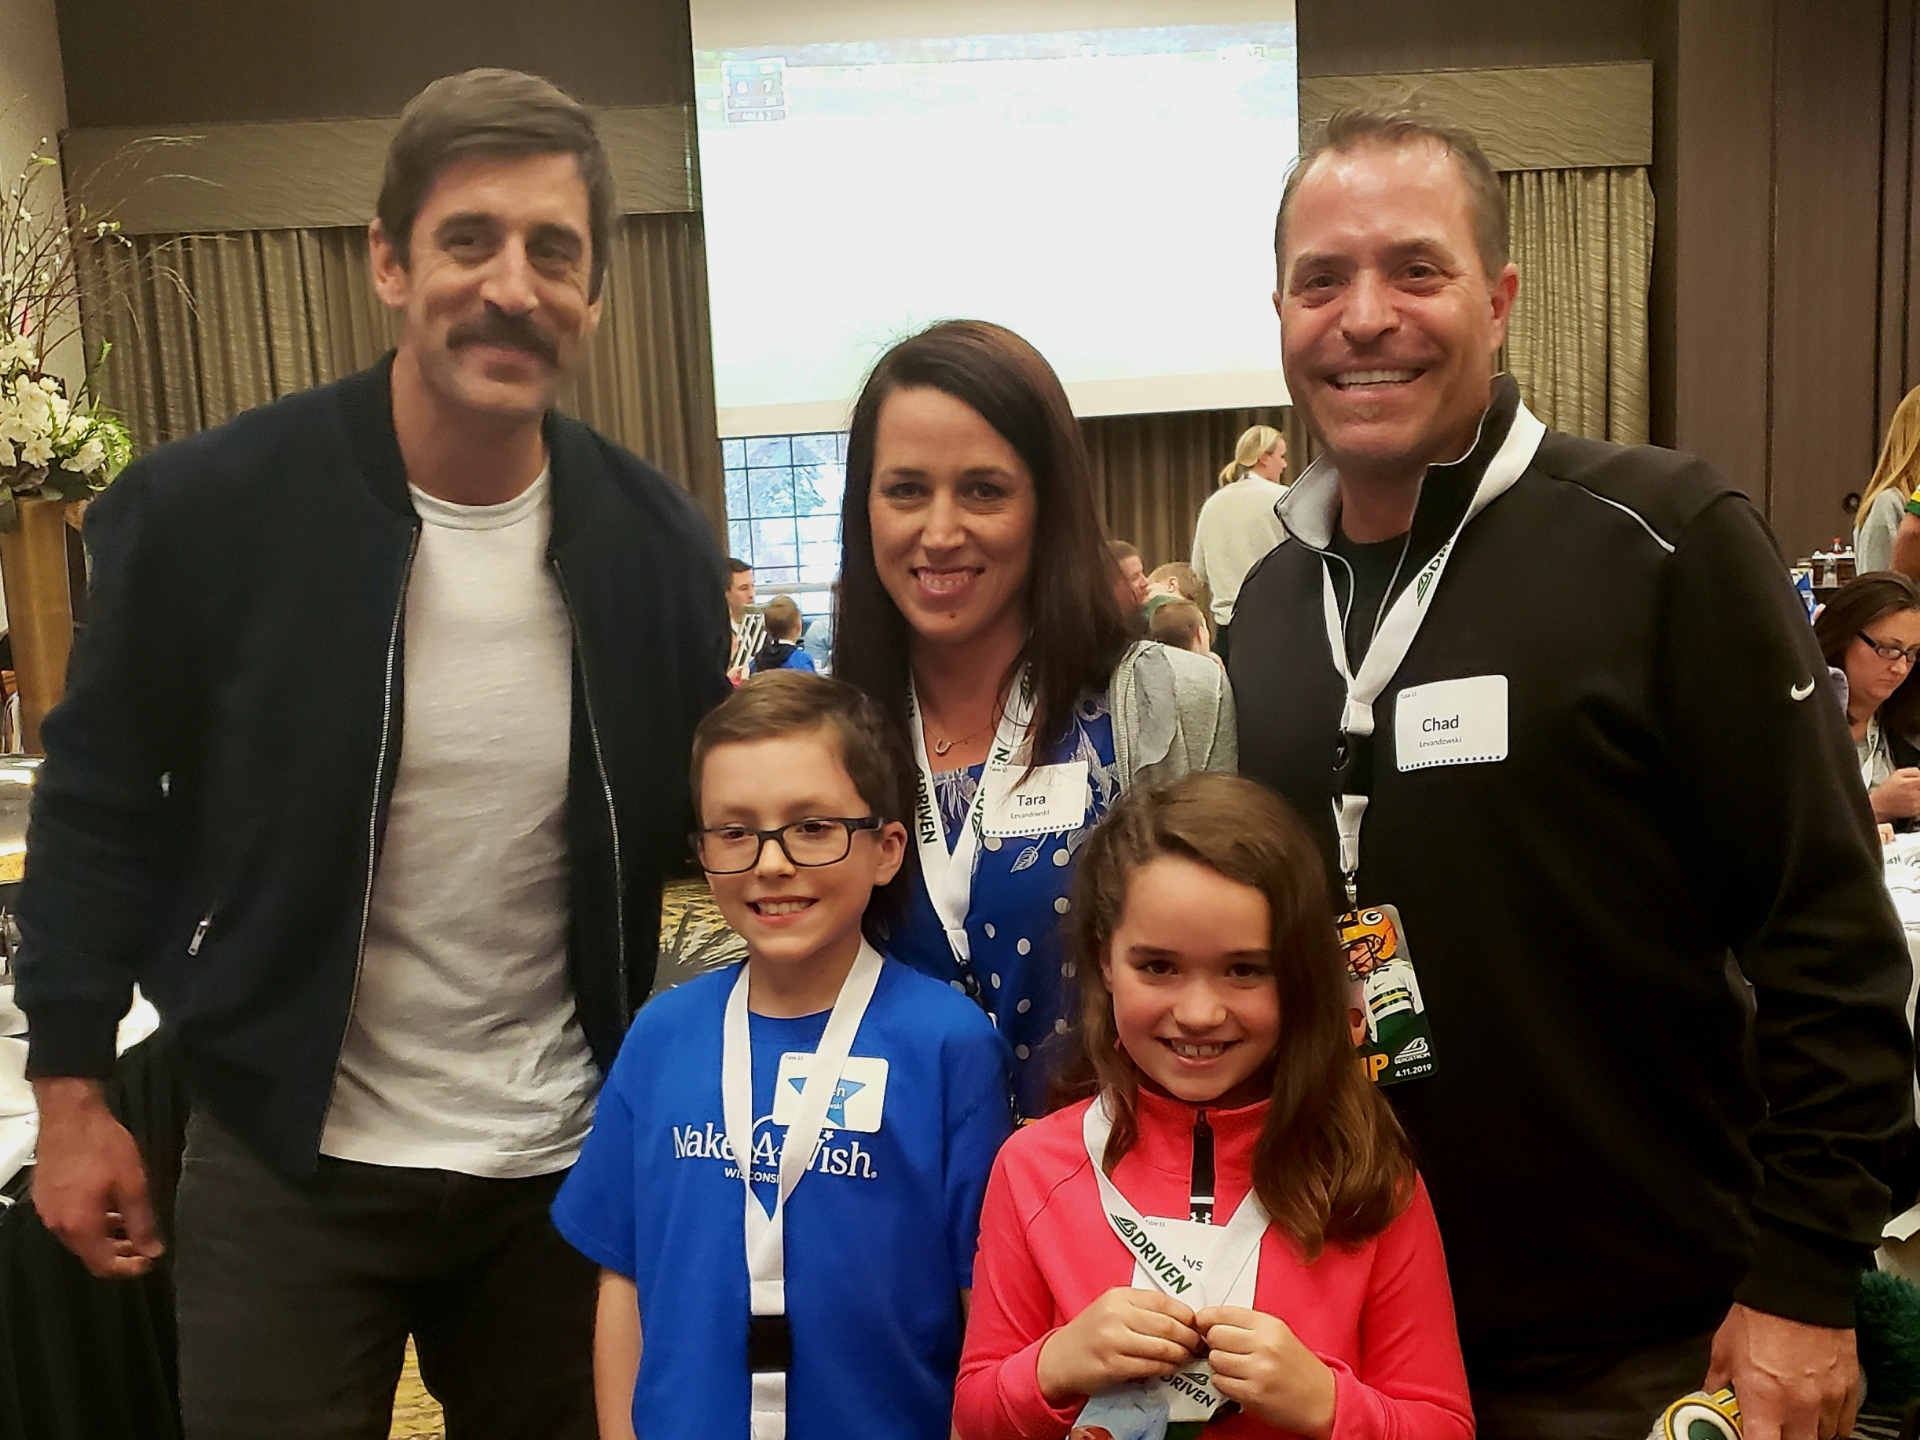 Sheboygan Family Gets To Meet Aaron Rodgers The Beacon